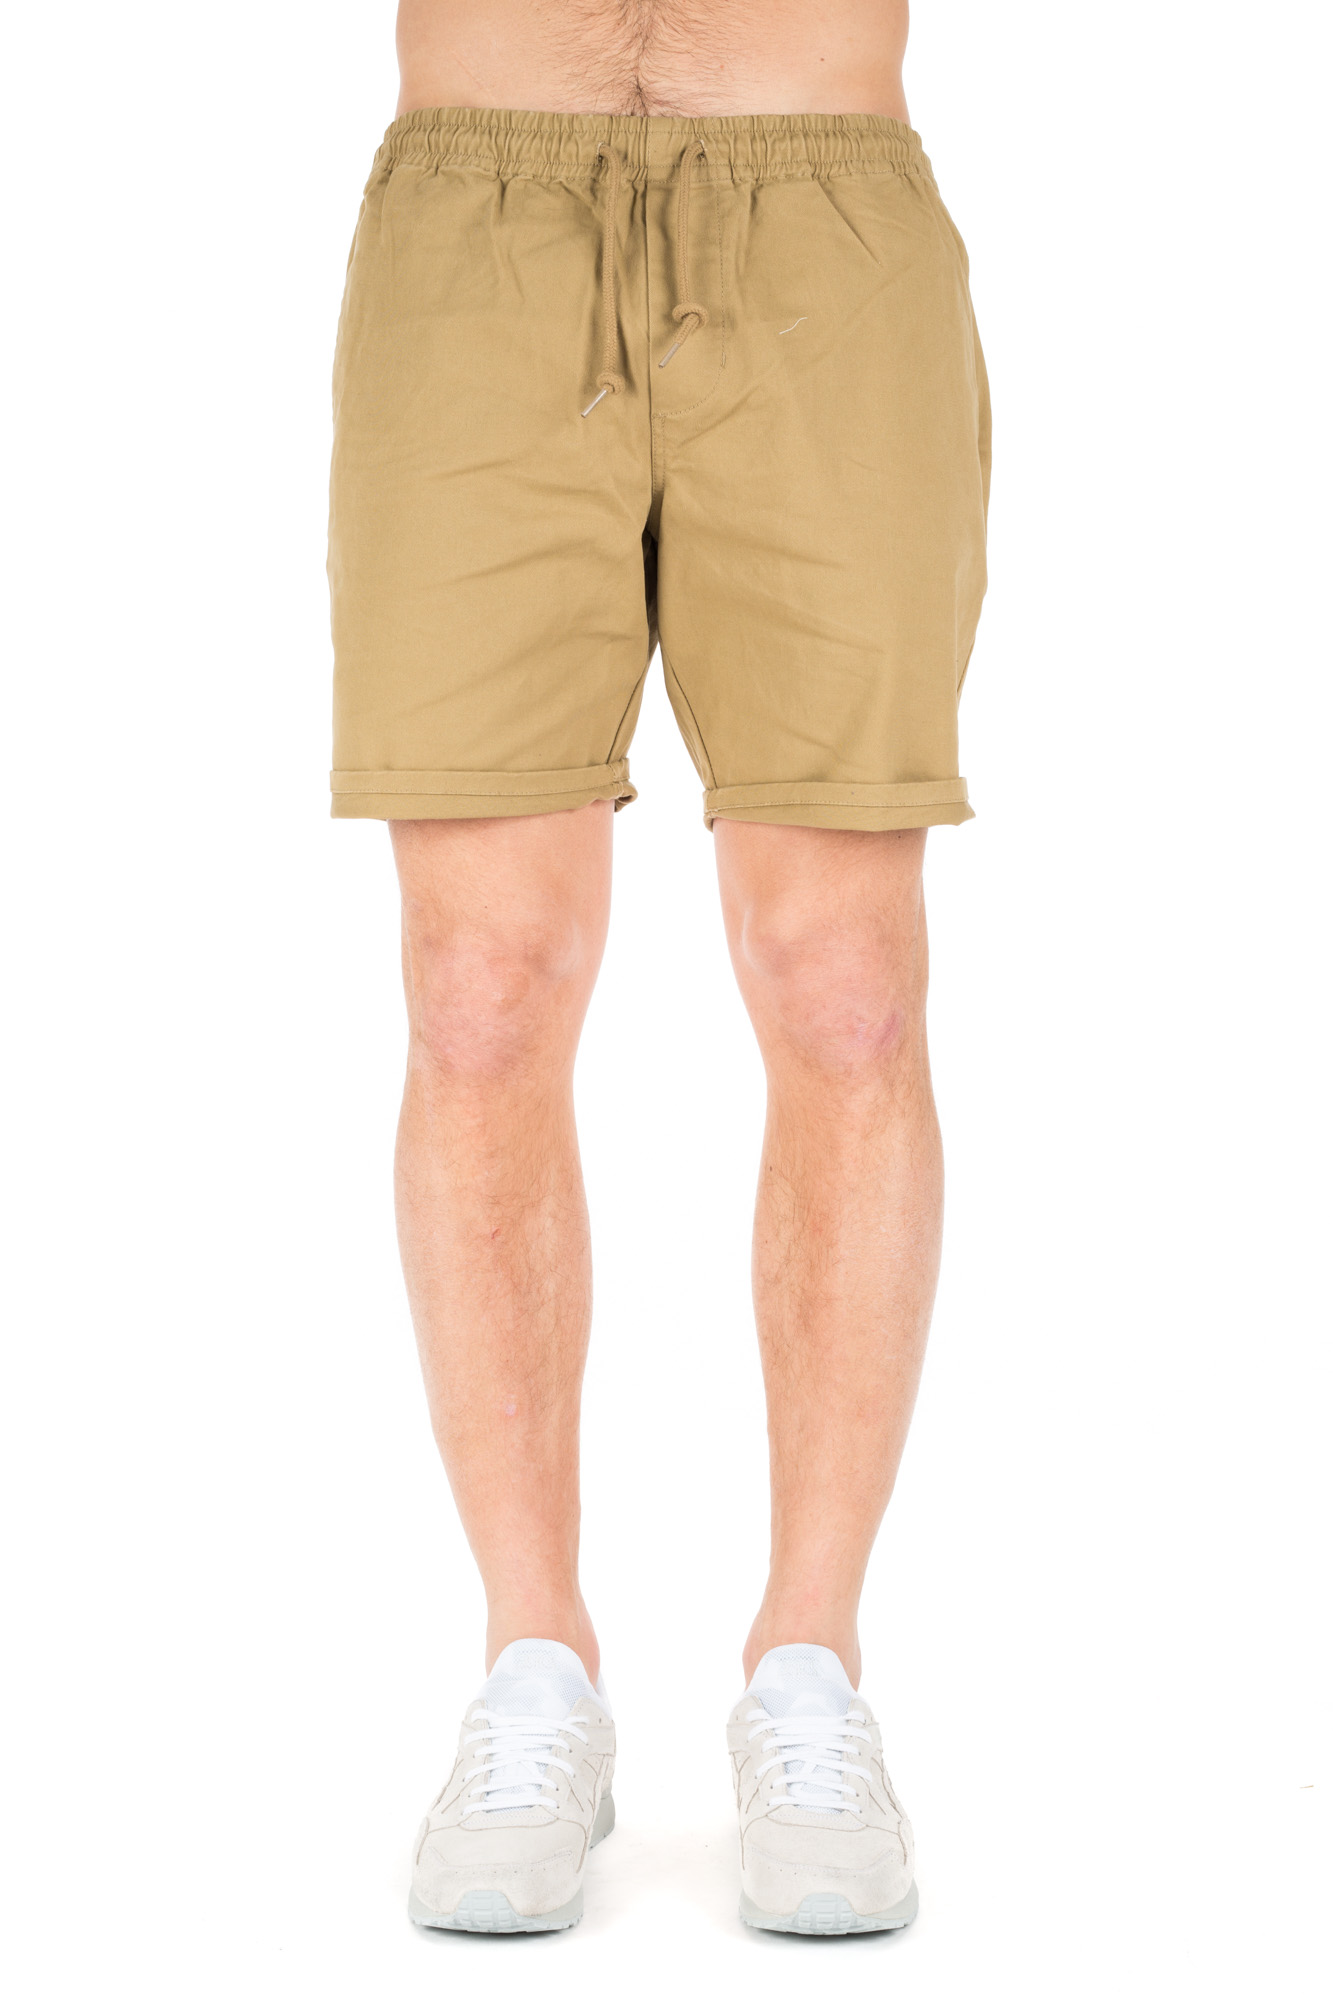 Obey - Elasticated waistband shorts Beige